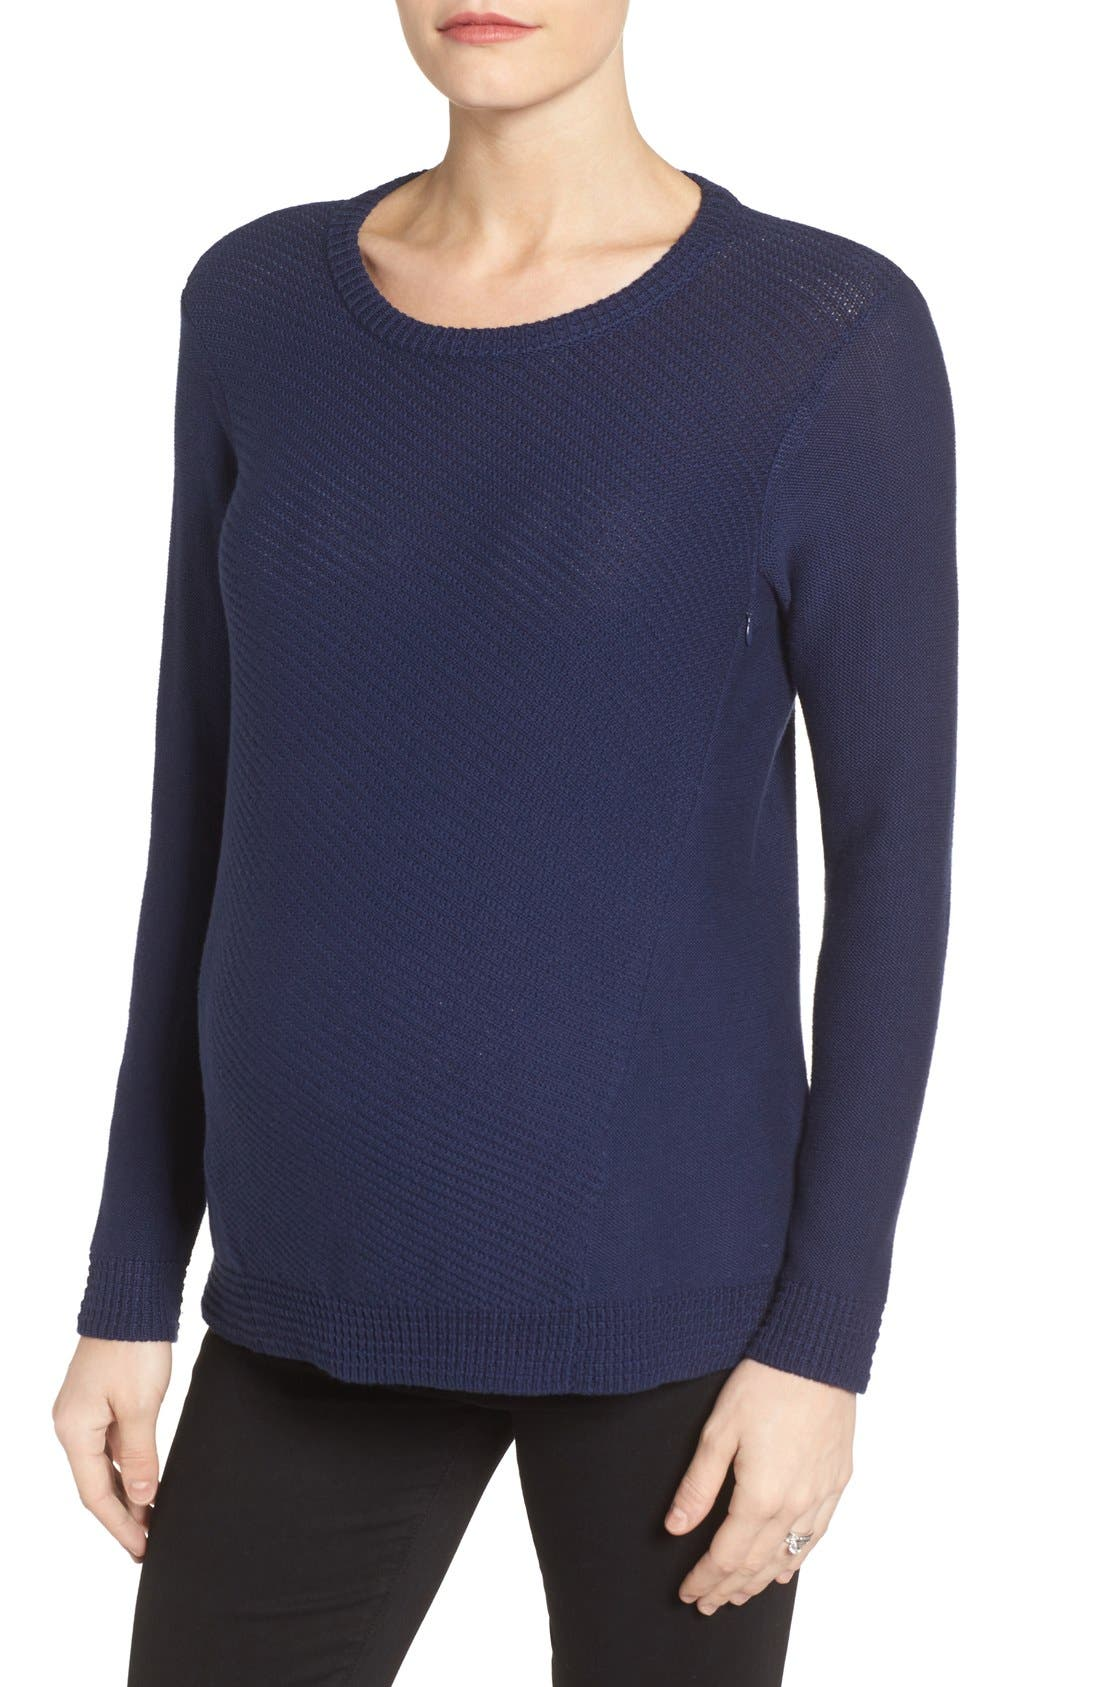 Wiley Maternity/Nursing Sweatshirt,                             Main thumbnail 1, color,                             Navy